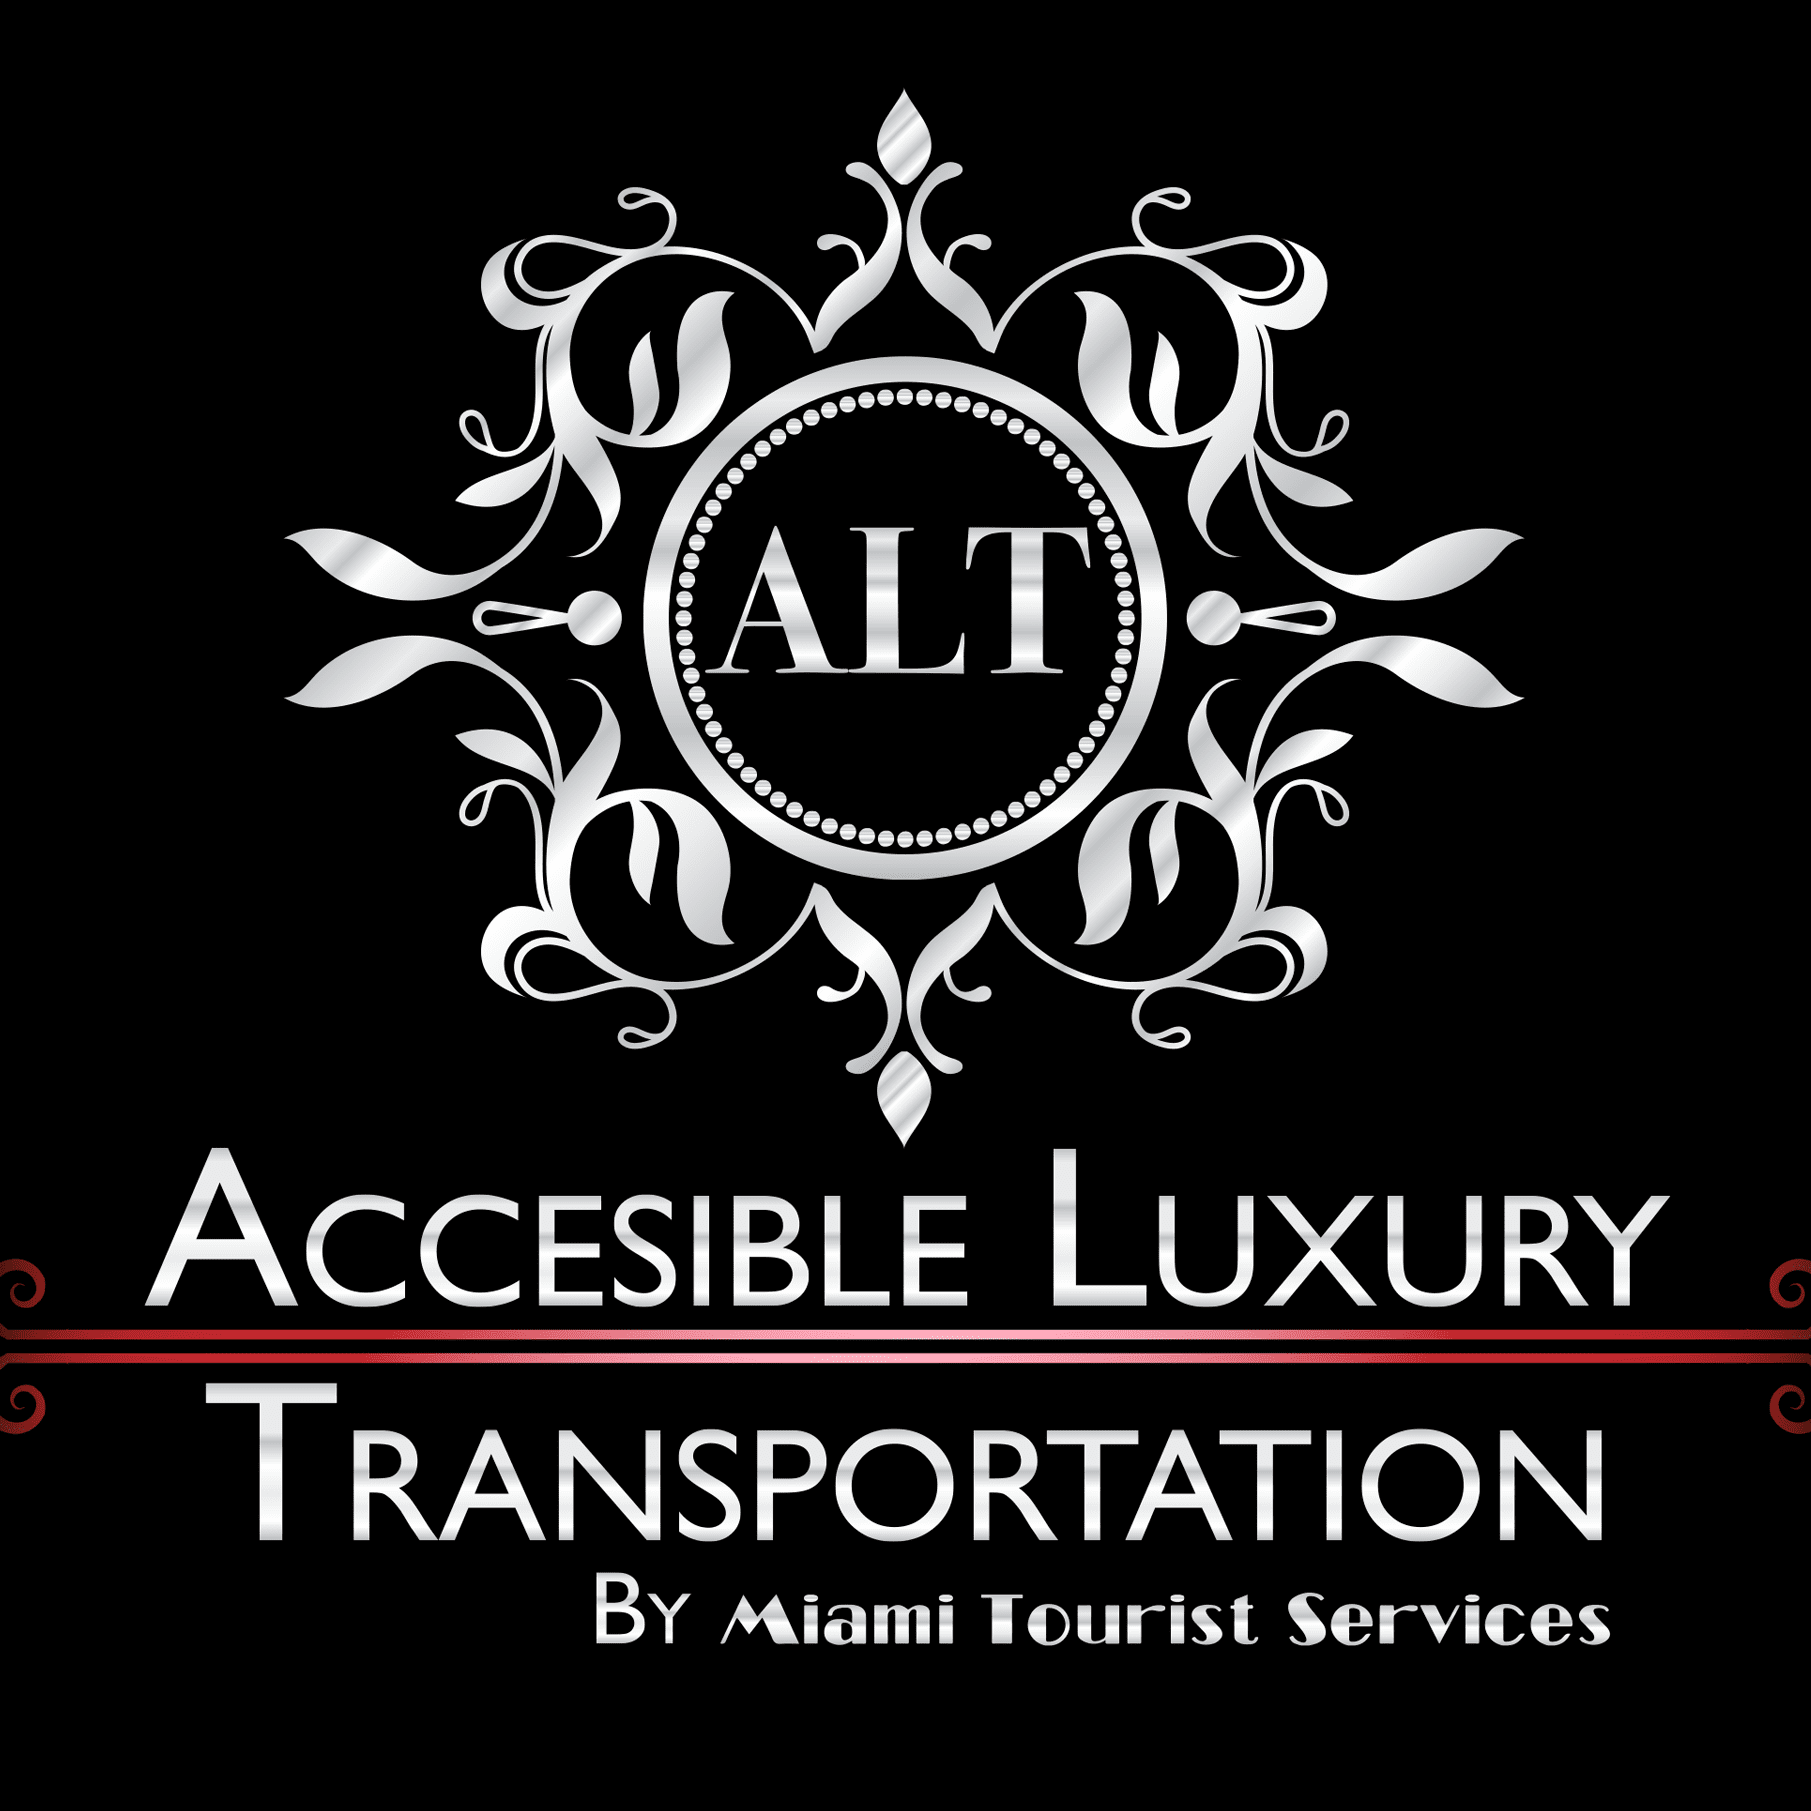 Accessible Luxury Transportation